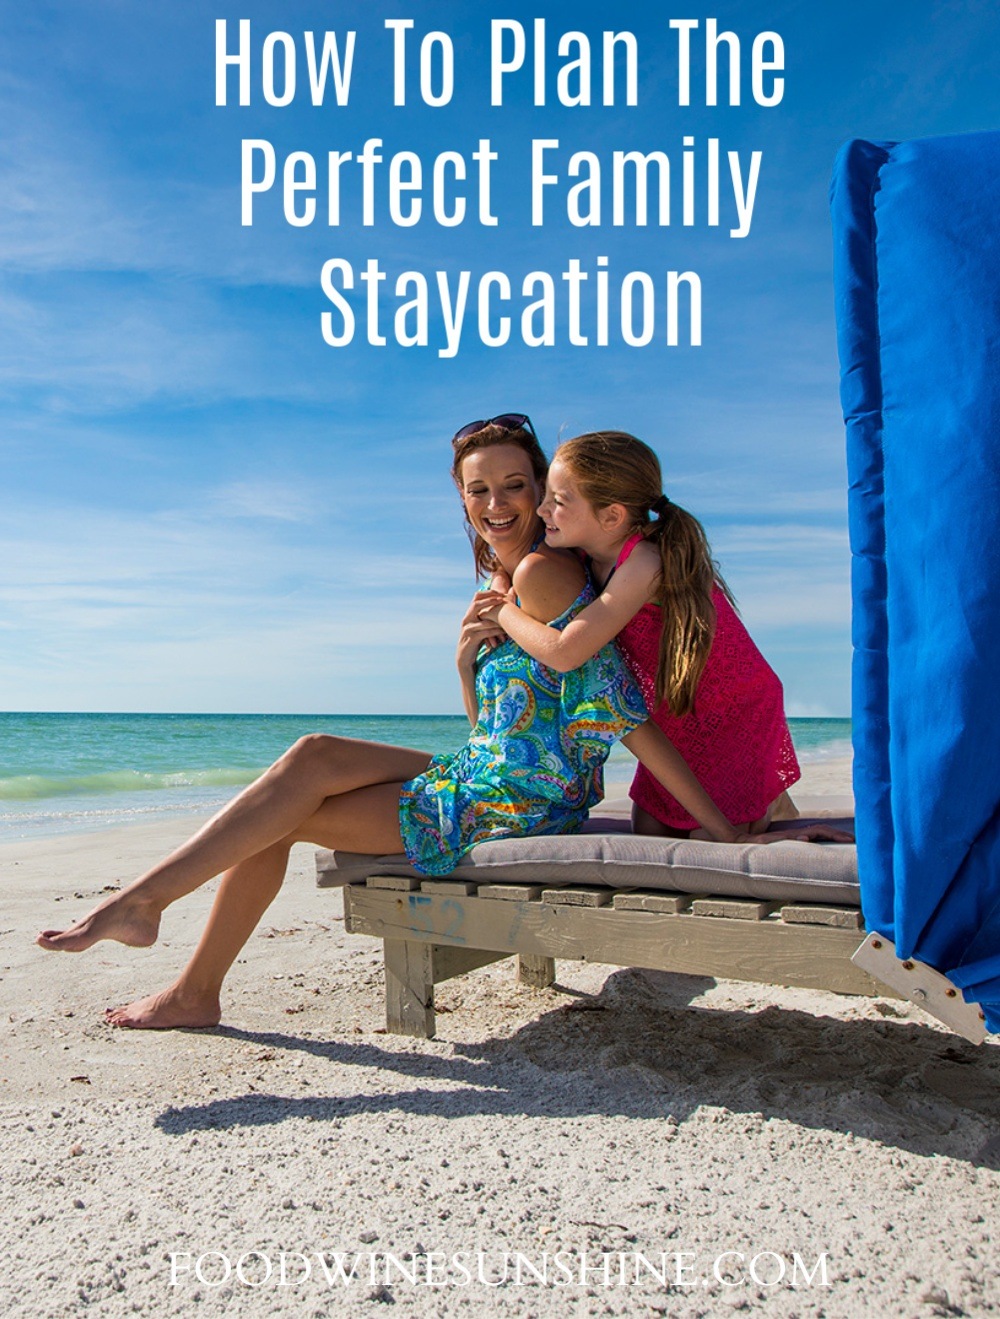 Planning the Perfect Staycation